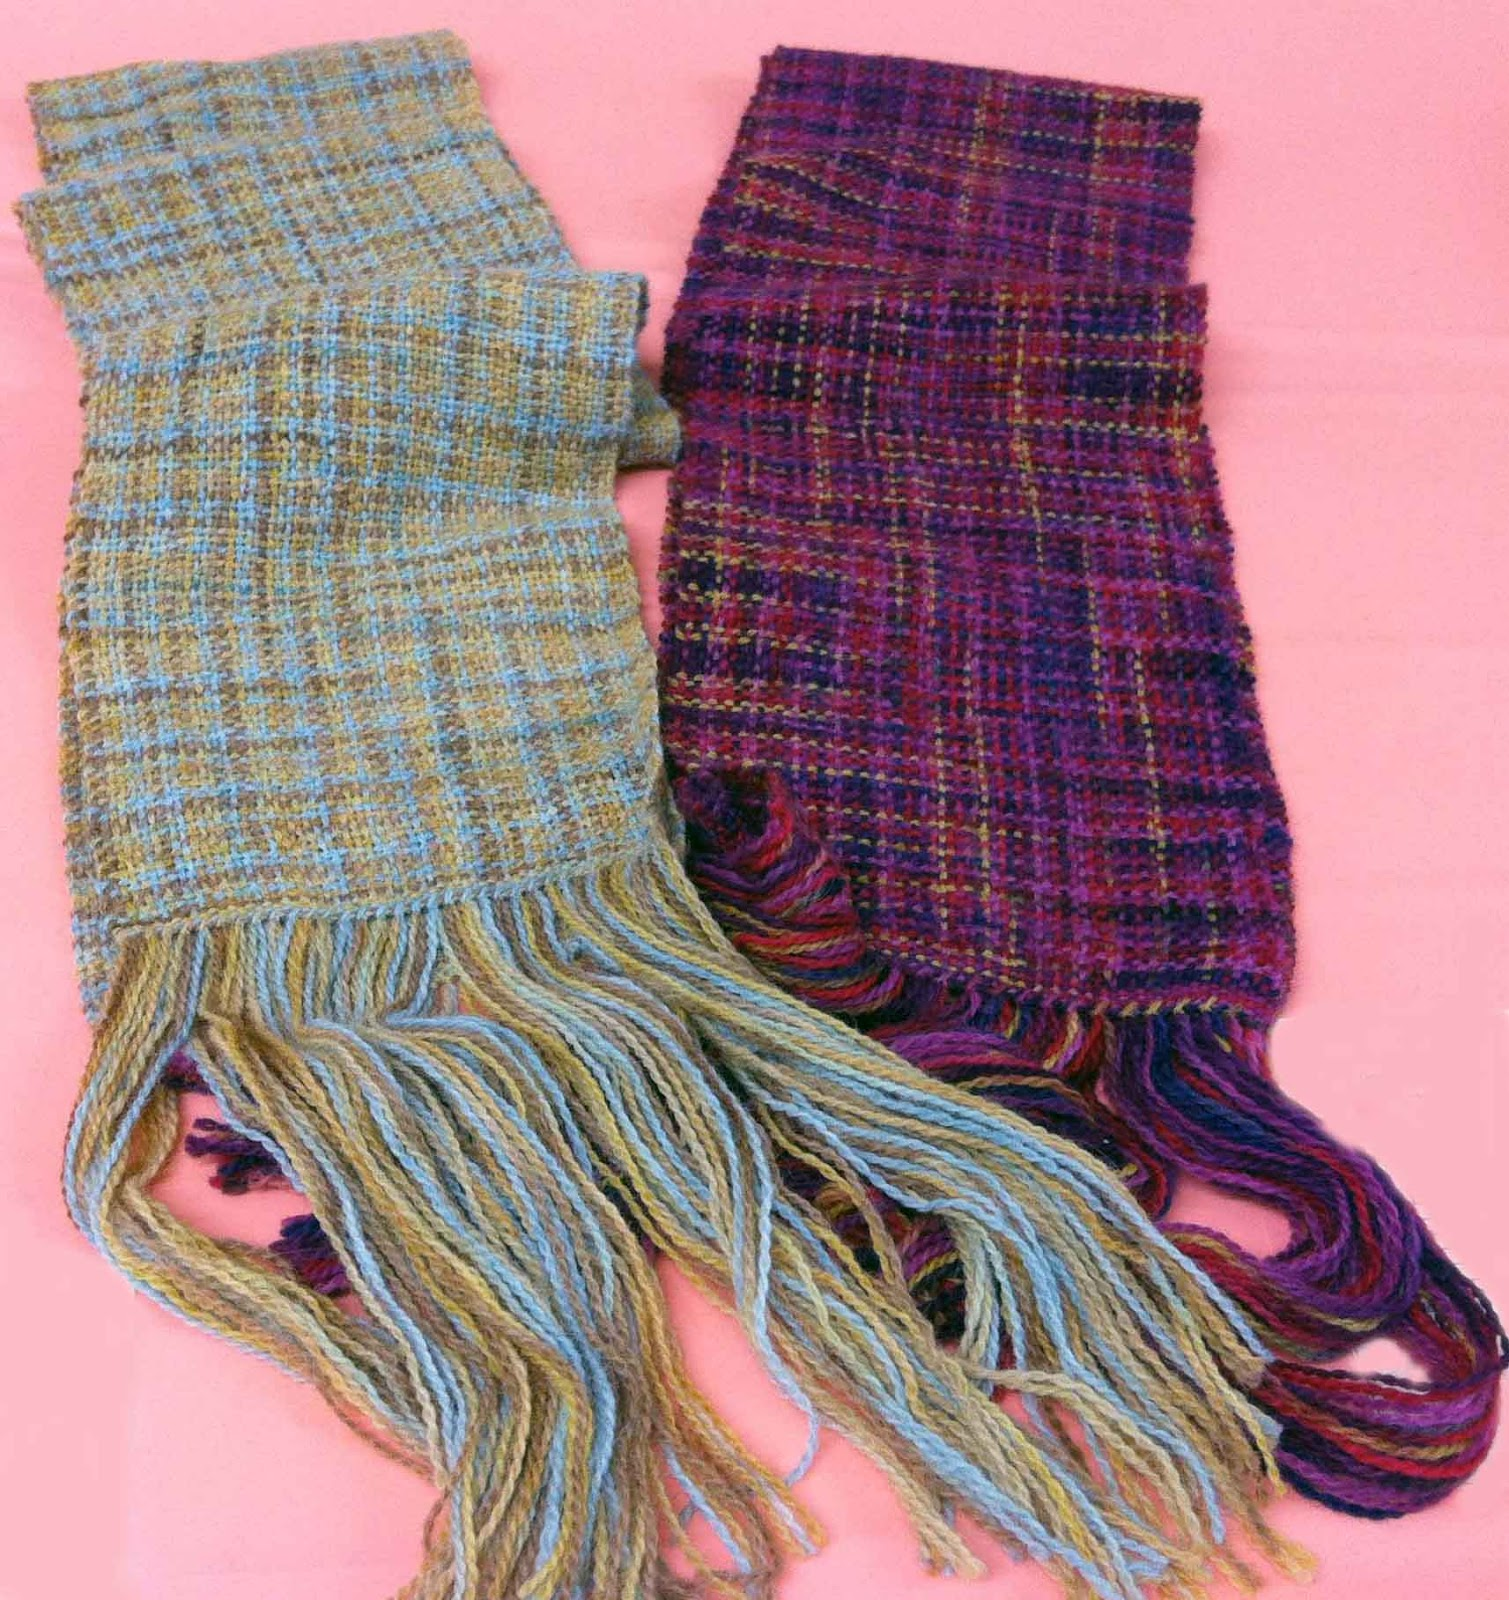 Knitting Yarn Scarf : Not square weavers knitting yarns into handwoven scarves